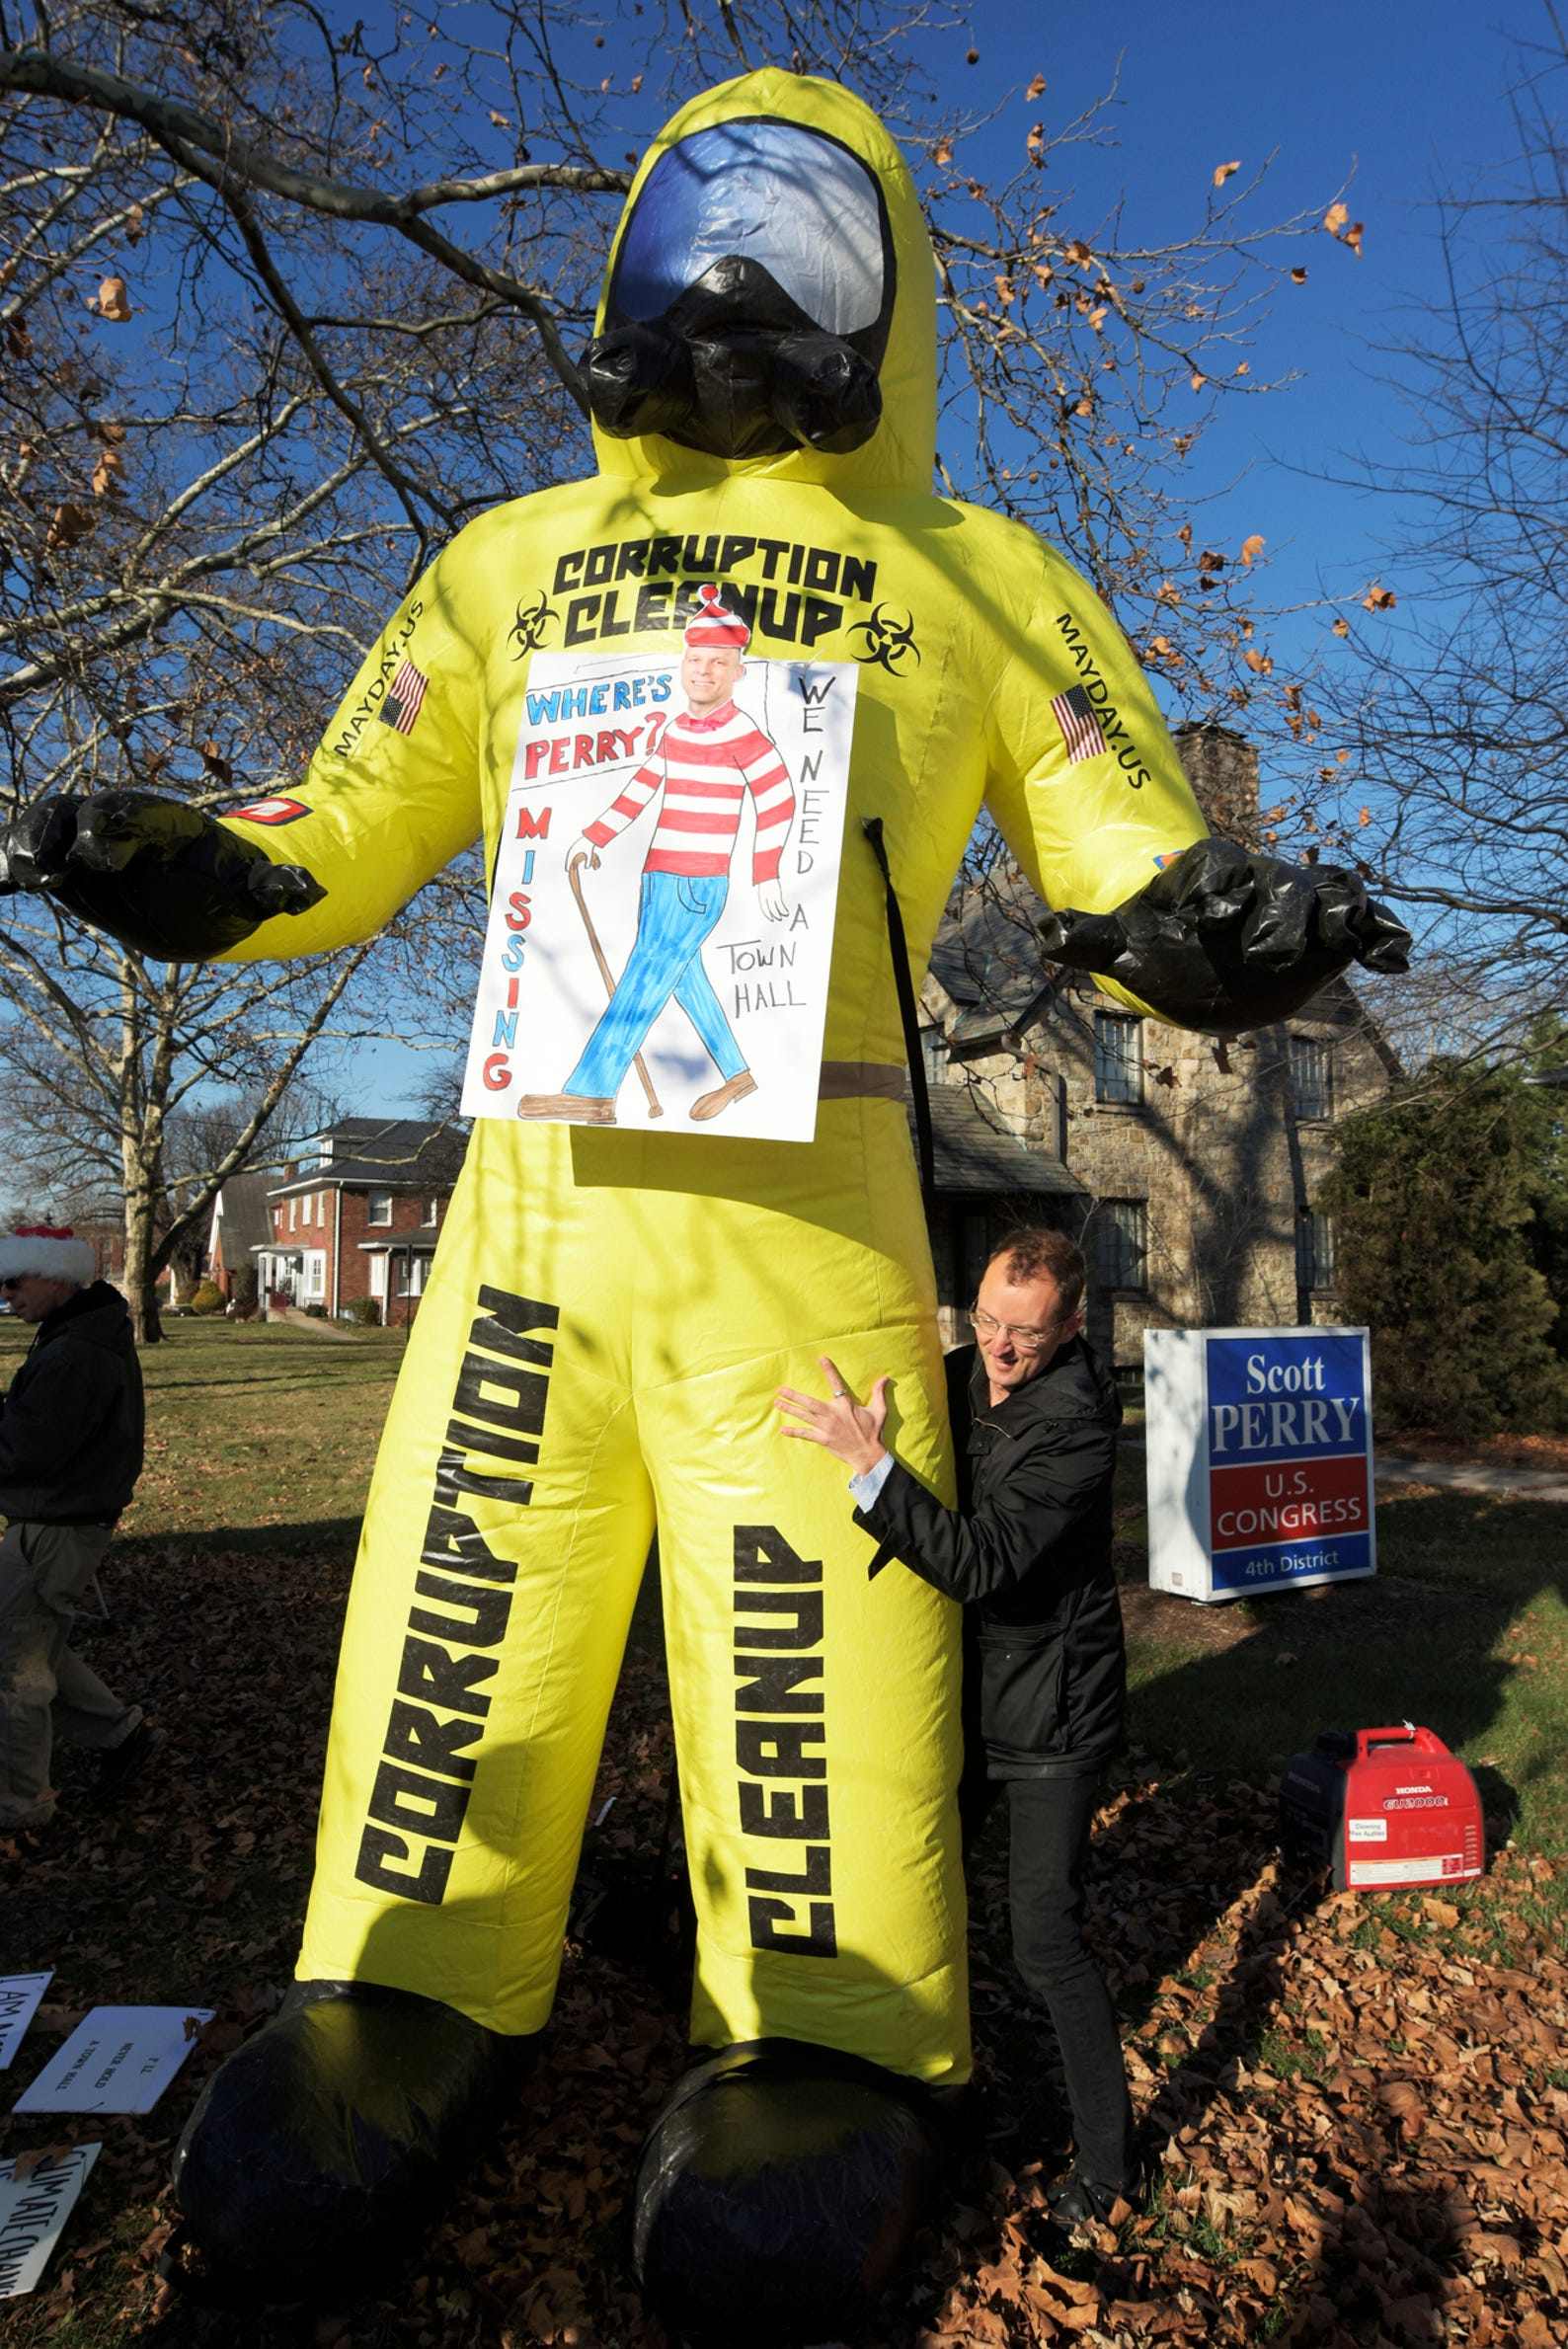 Mayday America member Chris Tallent of Baltimore positions and inflatable prop while preparing for a